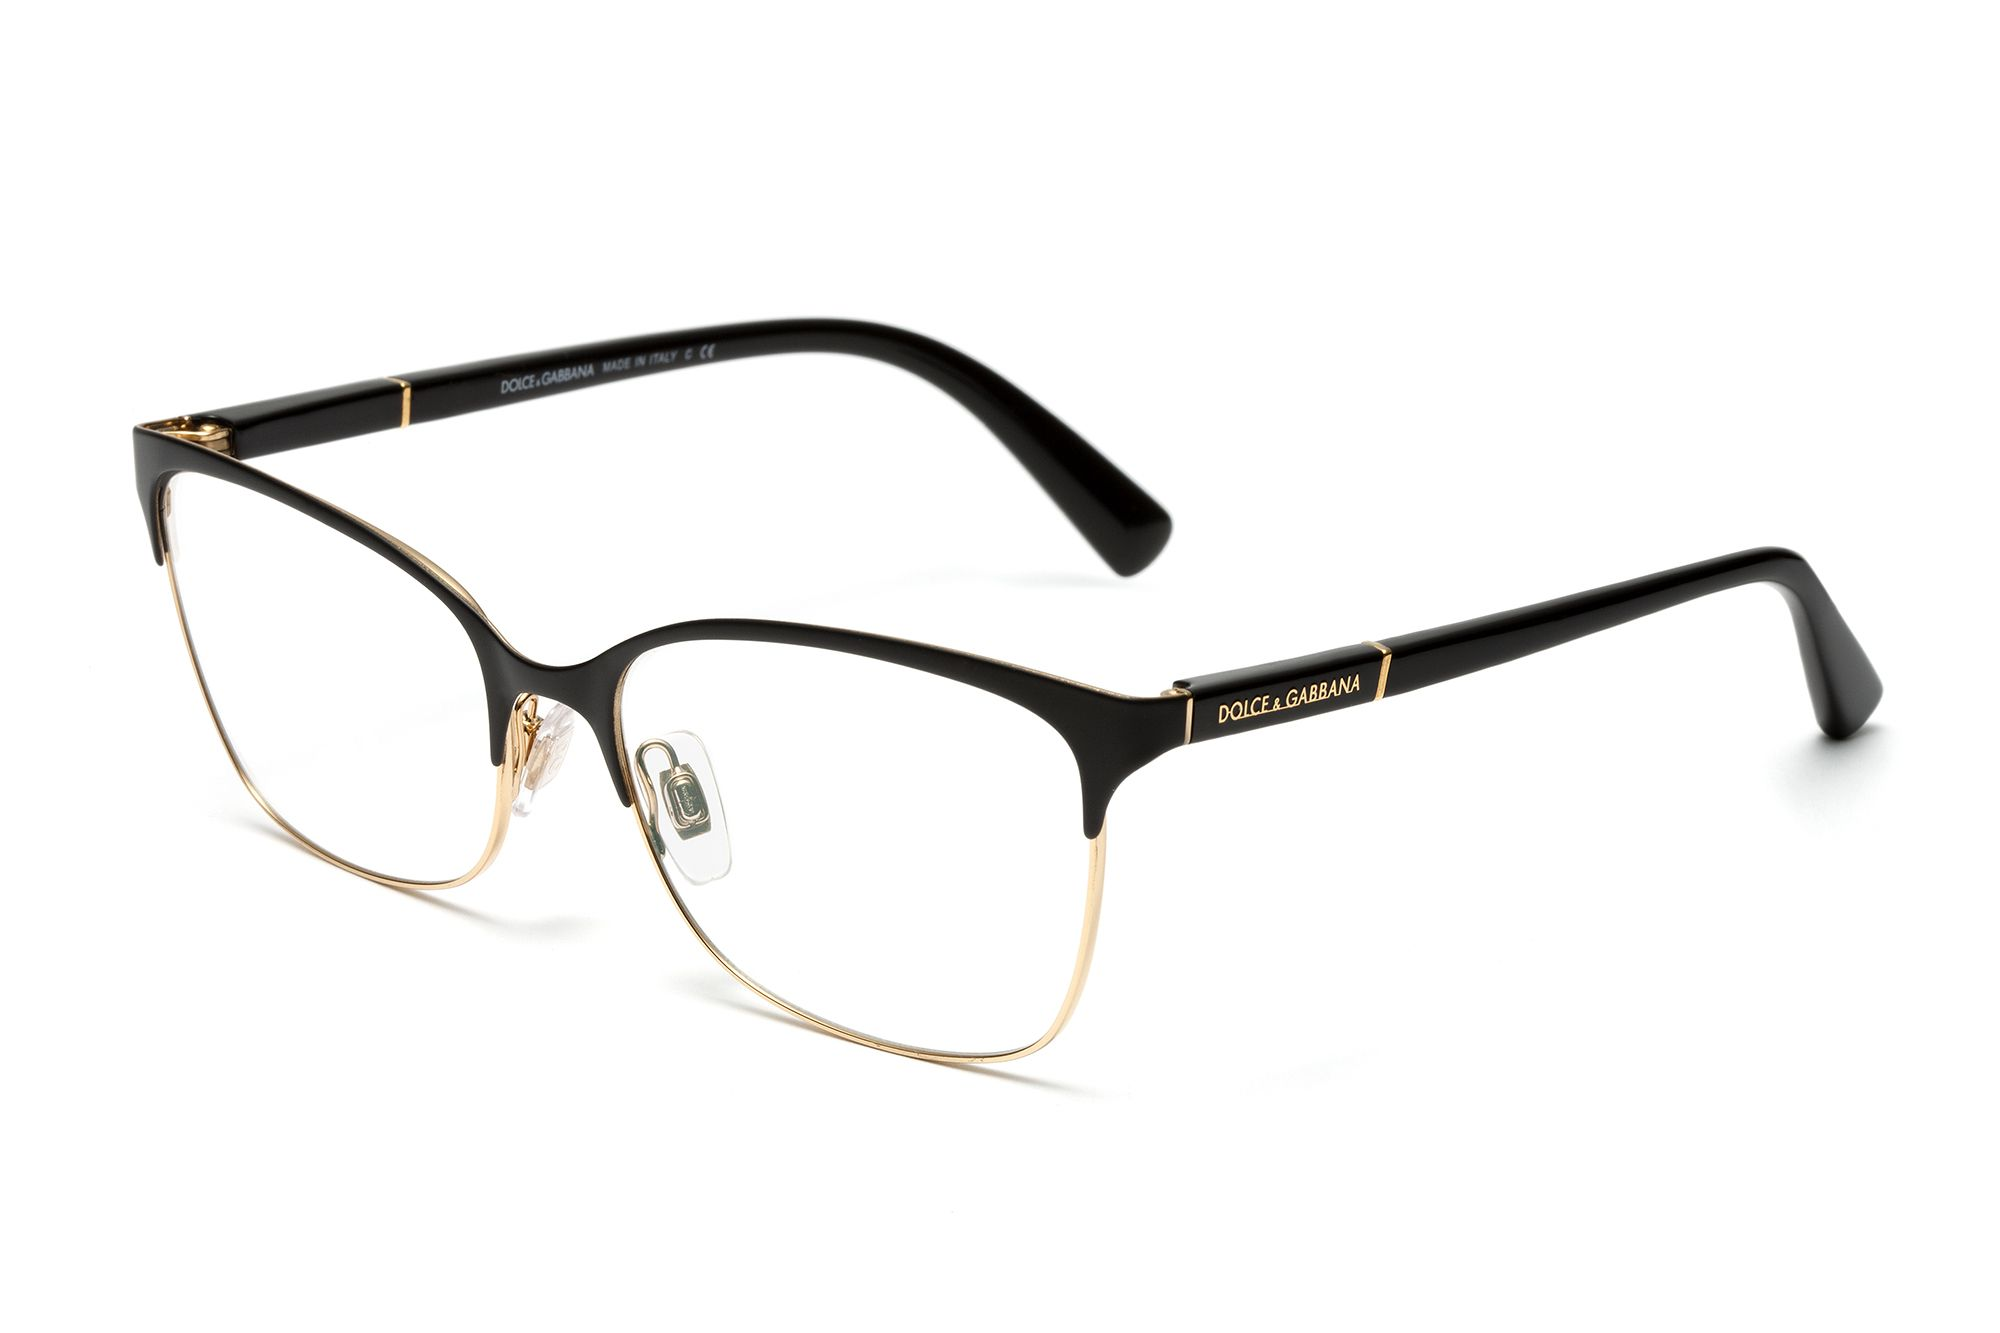 f850d83e630d Women's gold and matte black metal eyeglasses dg1268 with square frame and  Dolce & Gabbana logo on the temples. Visit D&G Eyewear website for more  details.